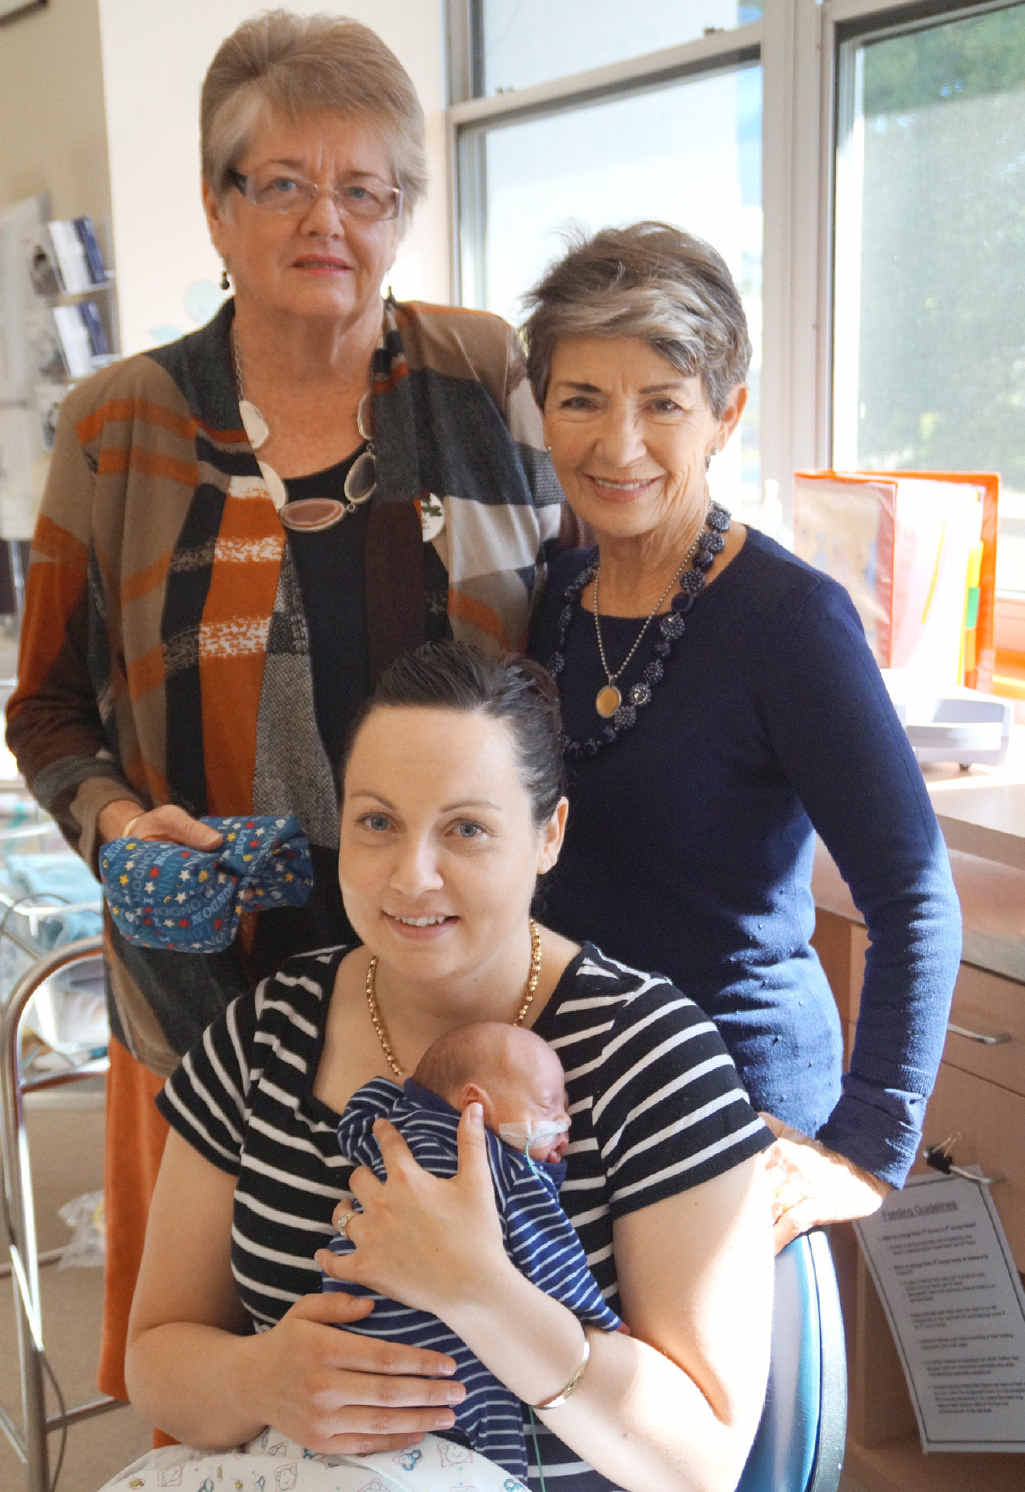 PREMMIE PILLOWS: The ladies of Toowoomba's Inner Wheel club have been busy sewing pillows for premmie babies in the Toowoomba Hospital Special Care Nursery. Mum Emma O'Brien (front) with her son Levi Garner who was born prematurely.